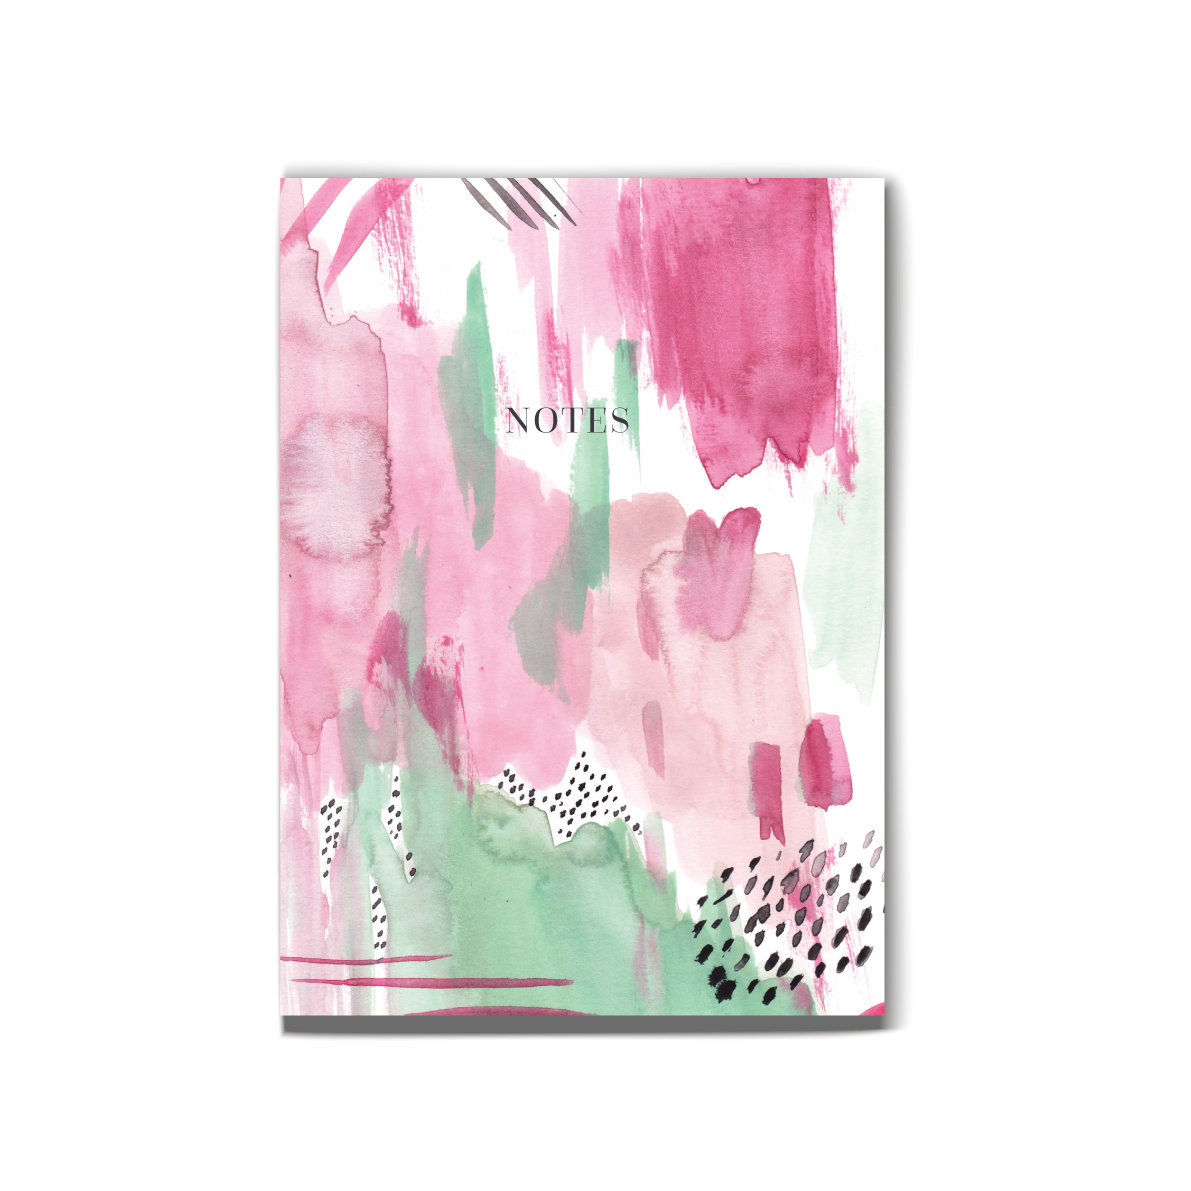 Notes Notebook 00046